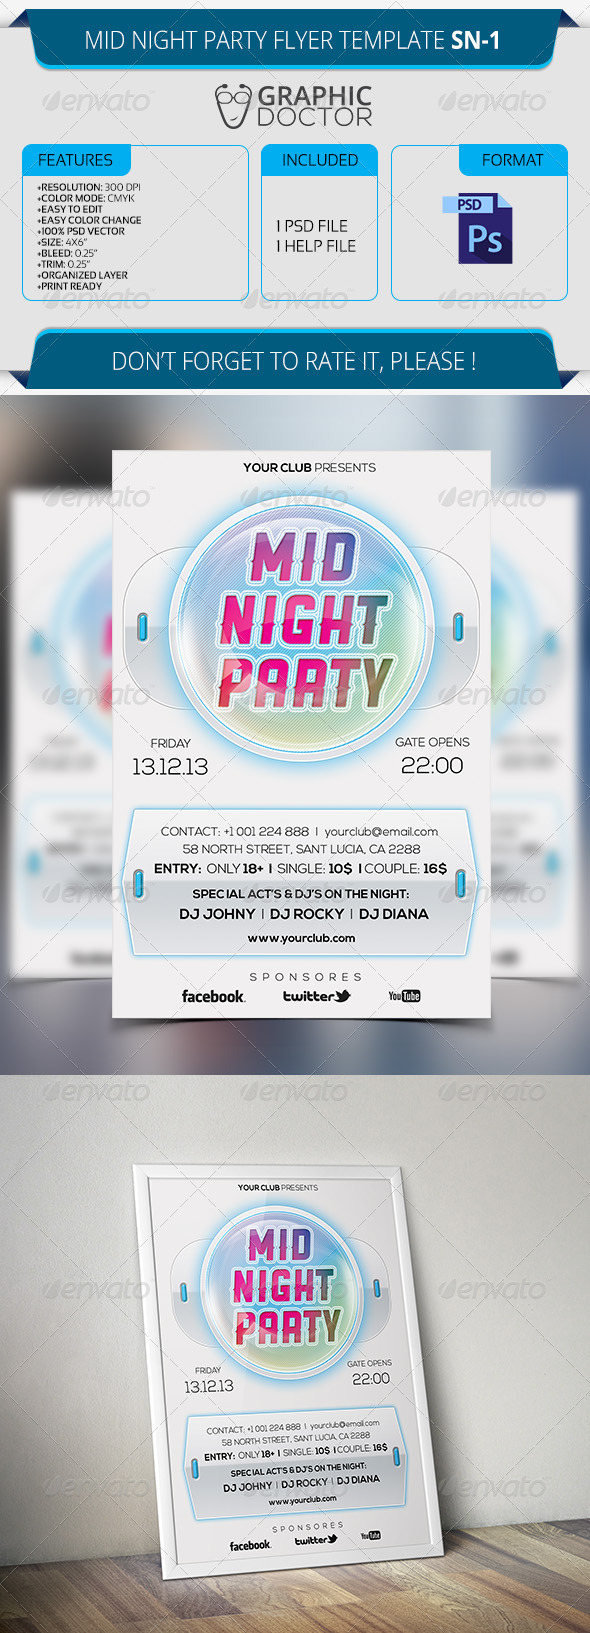 Mid Night Party Flyer Template SN-1 - Clubs & Parties Events